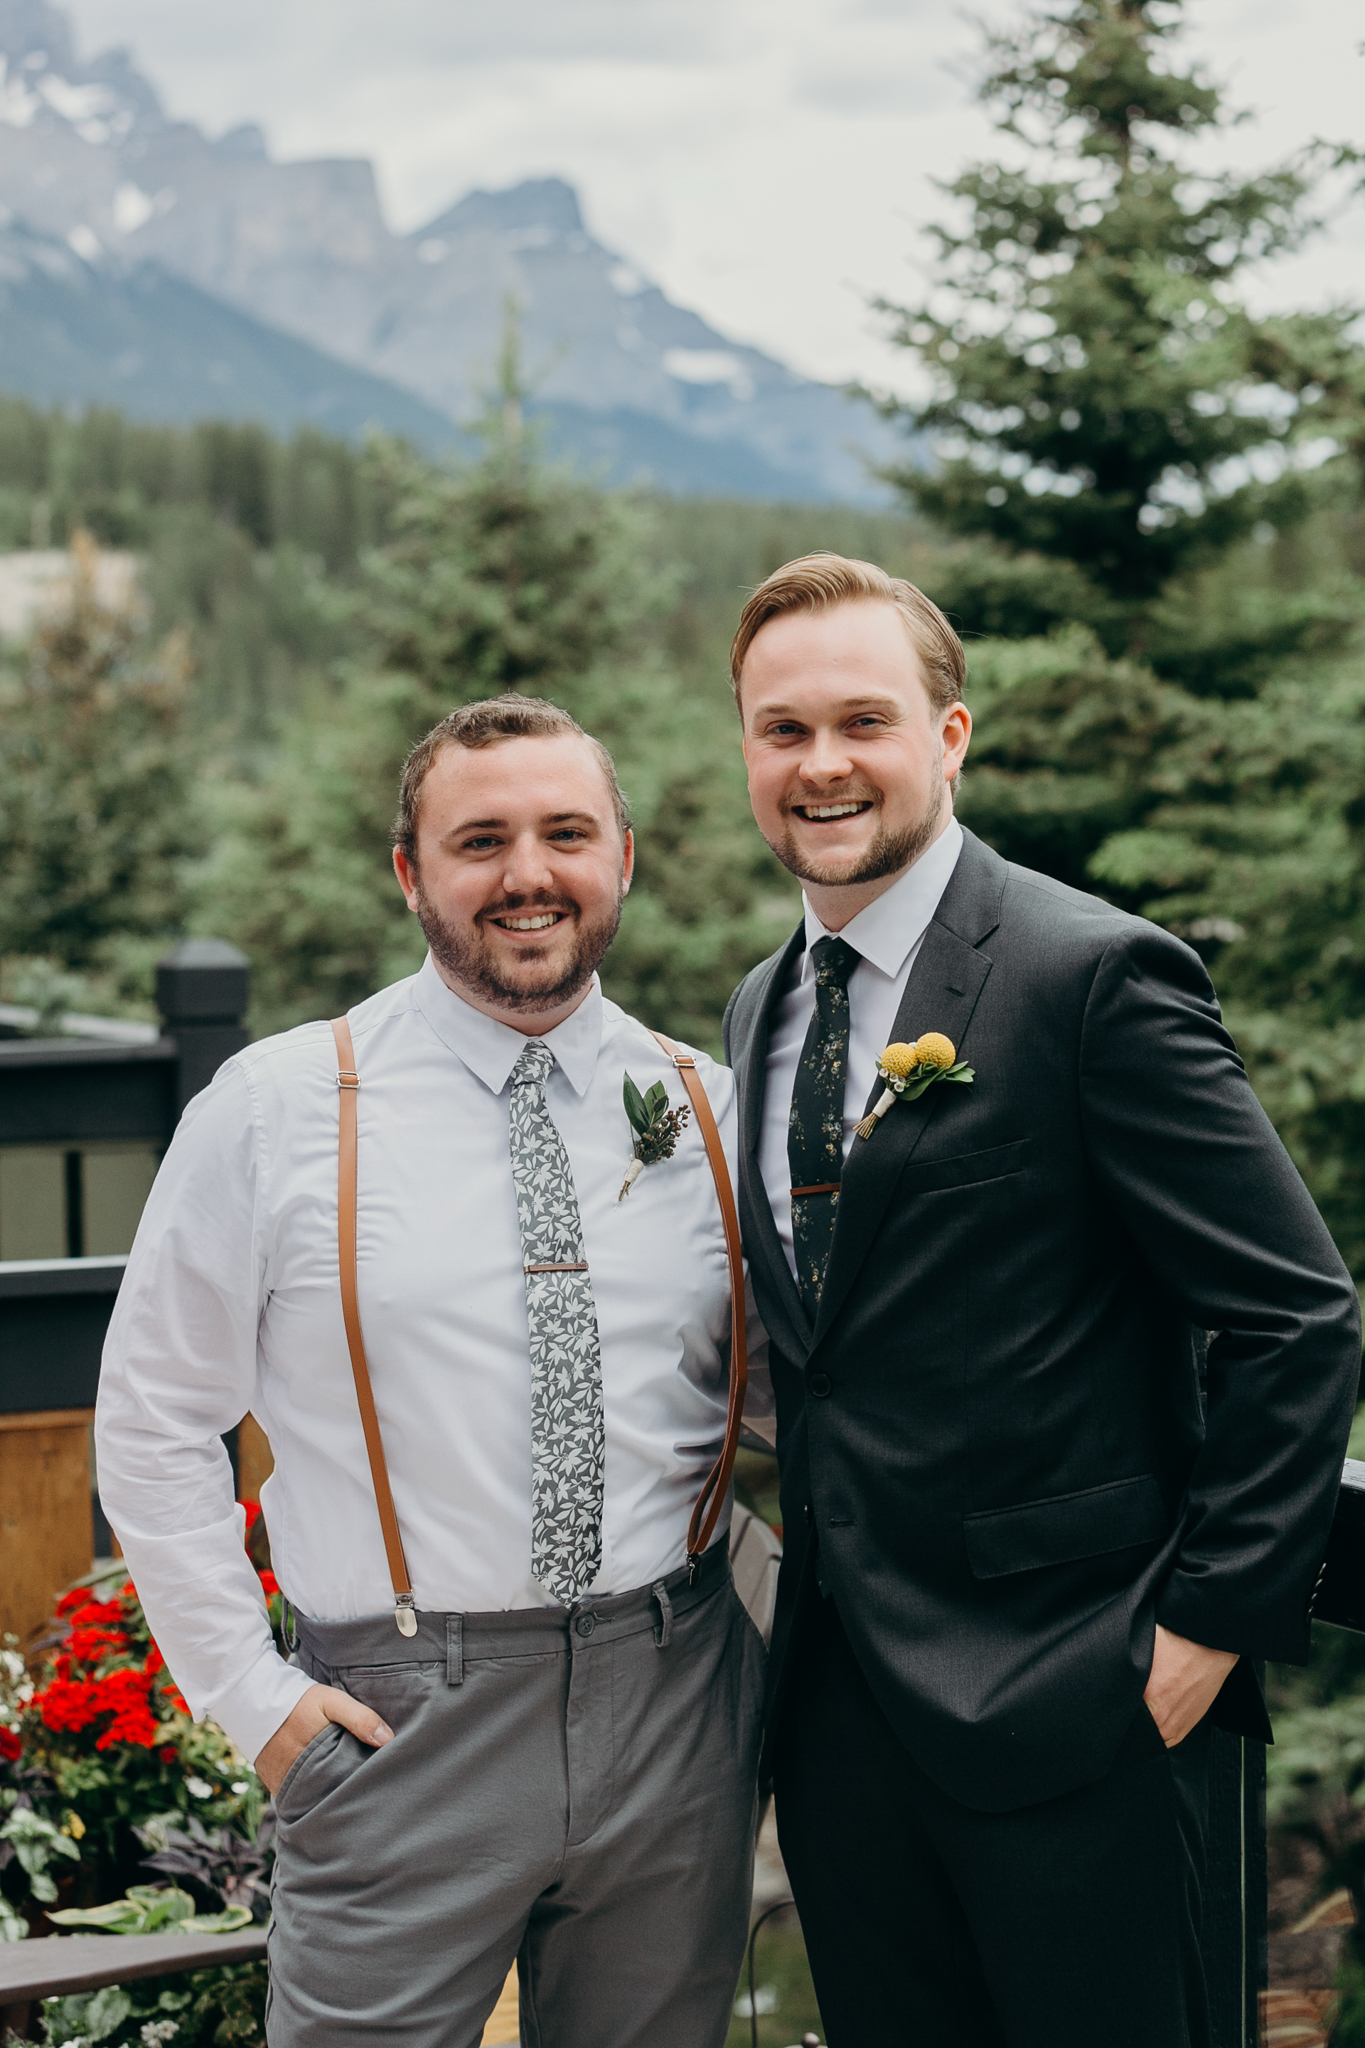 Groom and groomsman portrait smiling destination wedding photographer MN